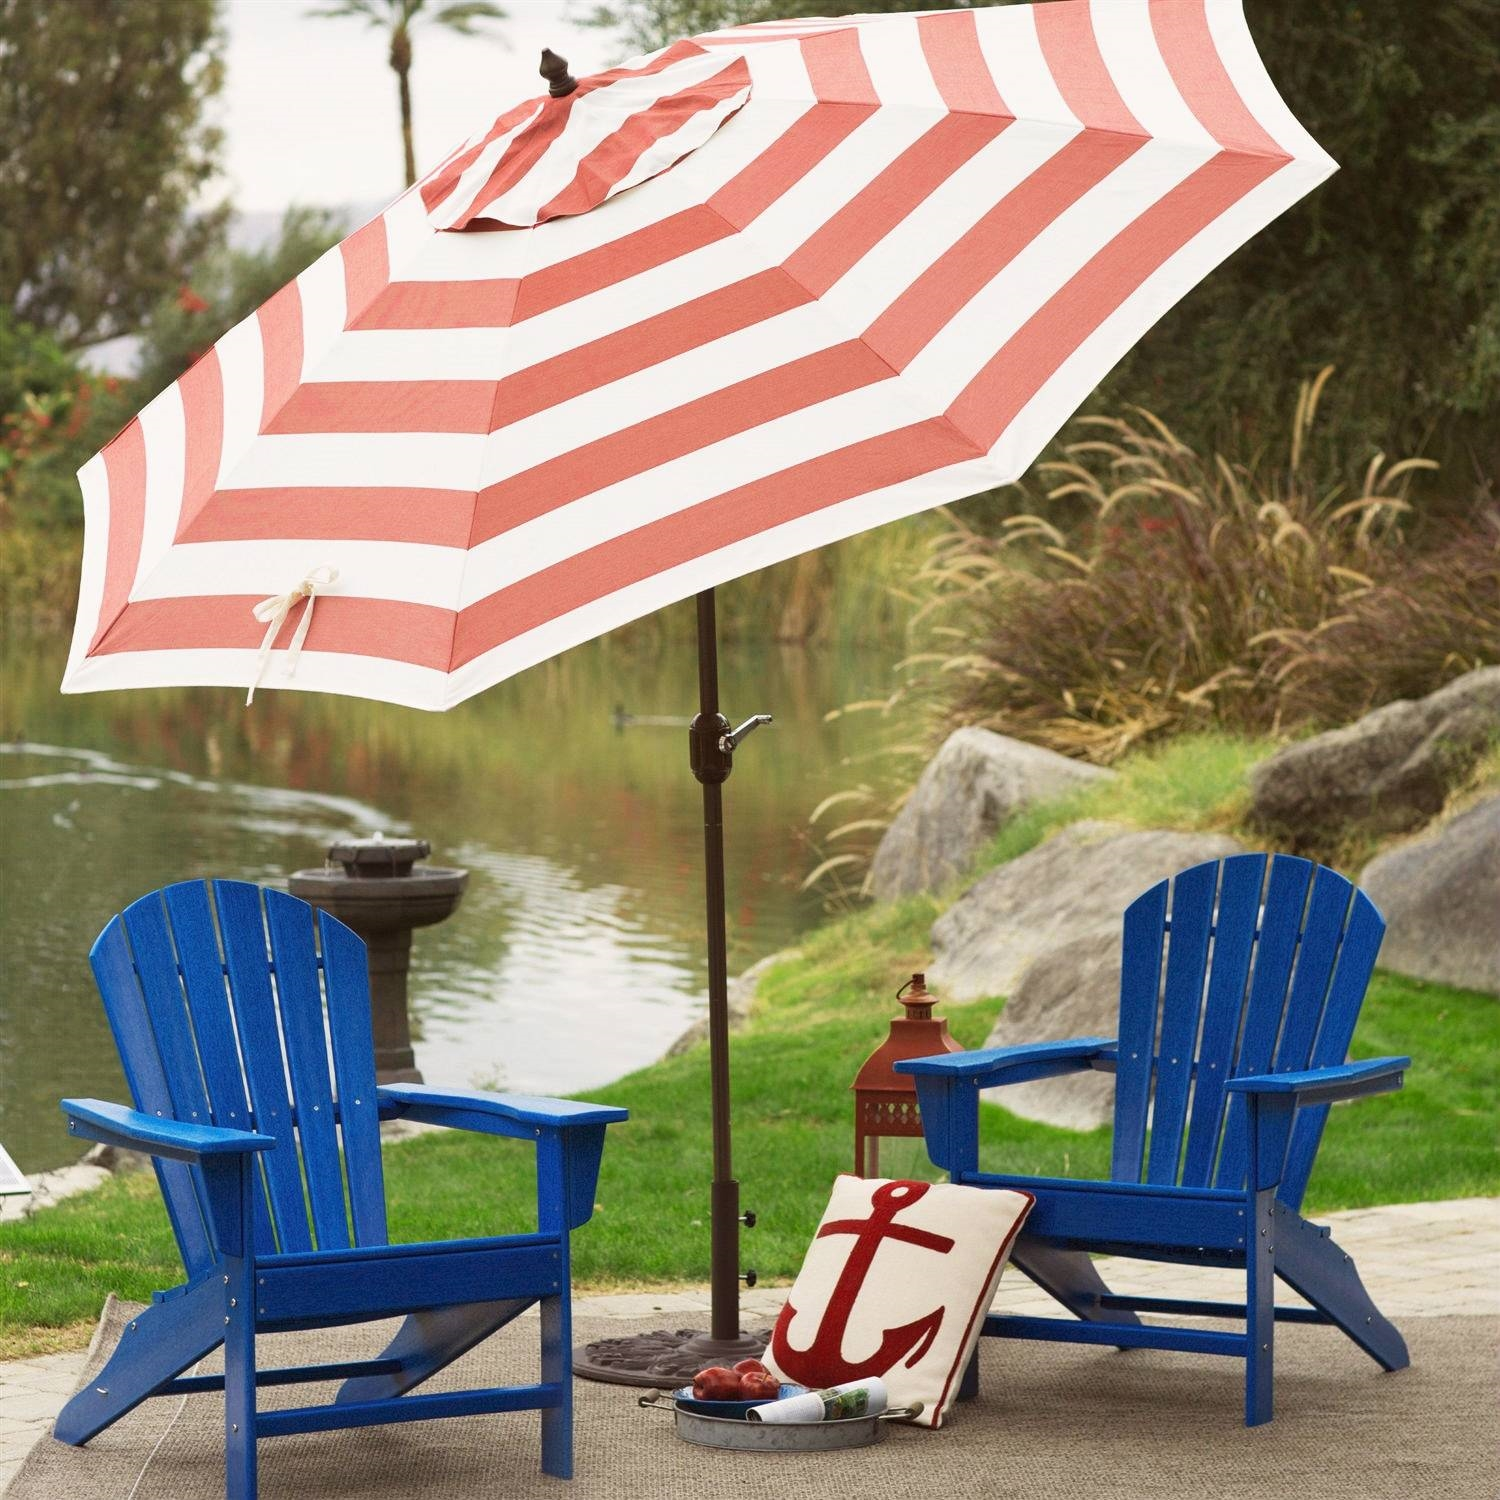 Outdoor 9 Ft Metal Patio Umbrella With Tilt And Crank Lift In Red White